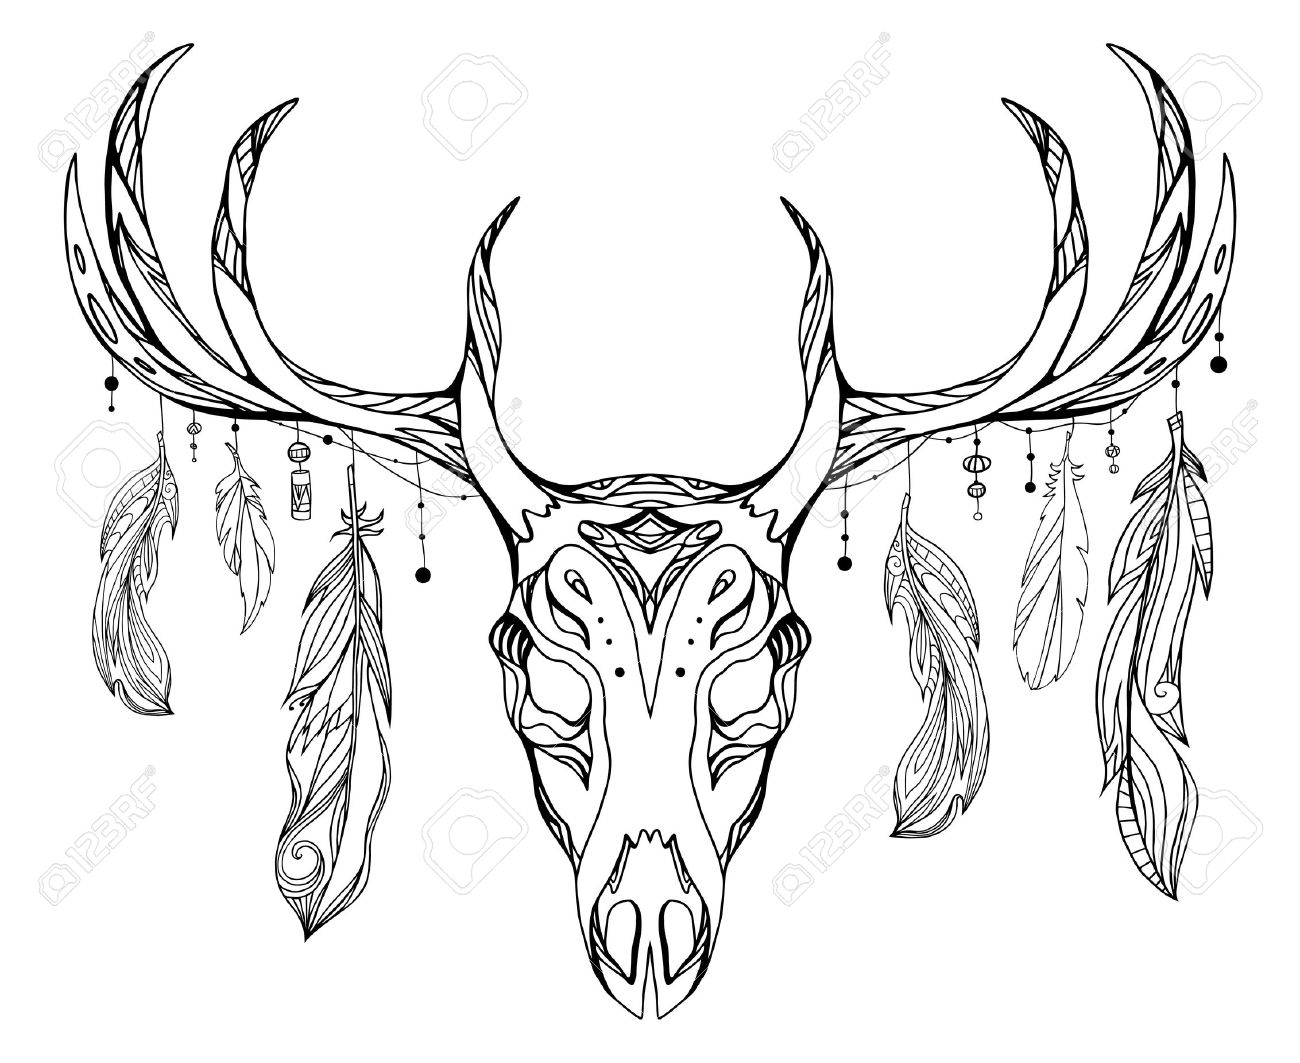 1300x1063 Contour Illustration Of A Deer Skull With Antlers And Feathers